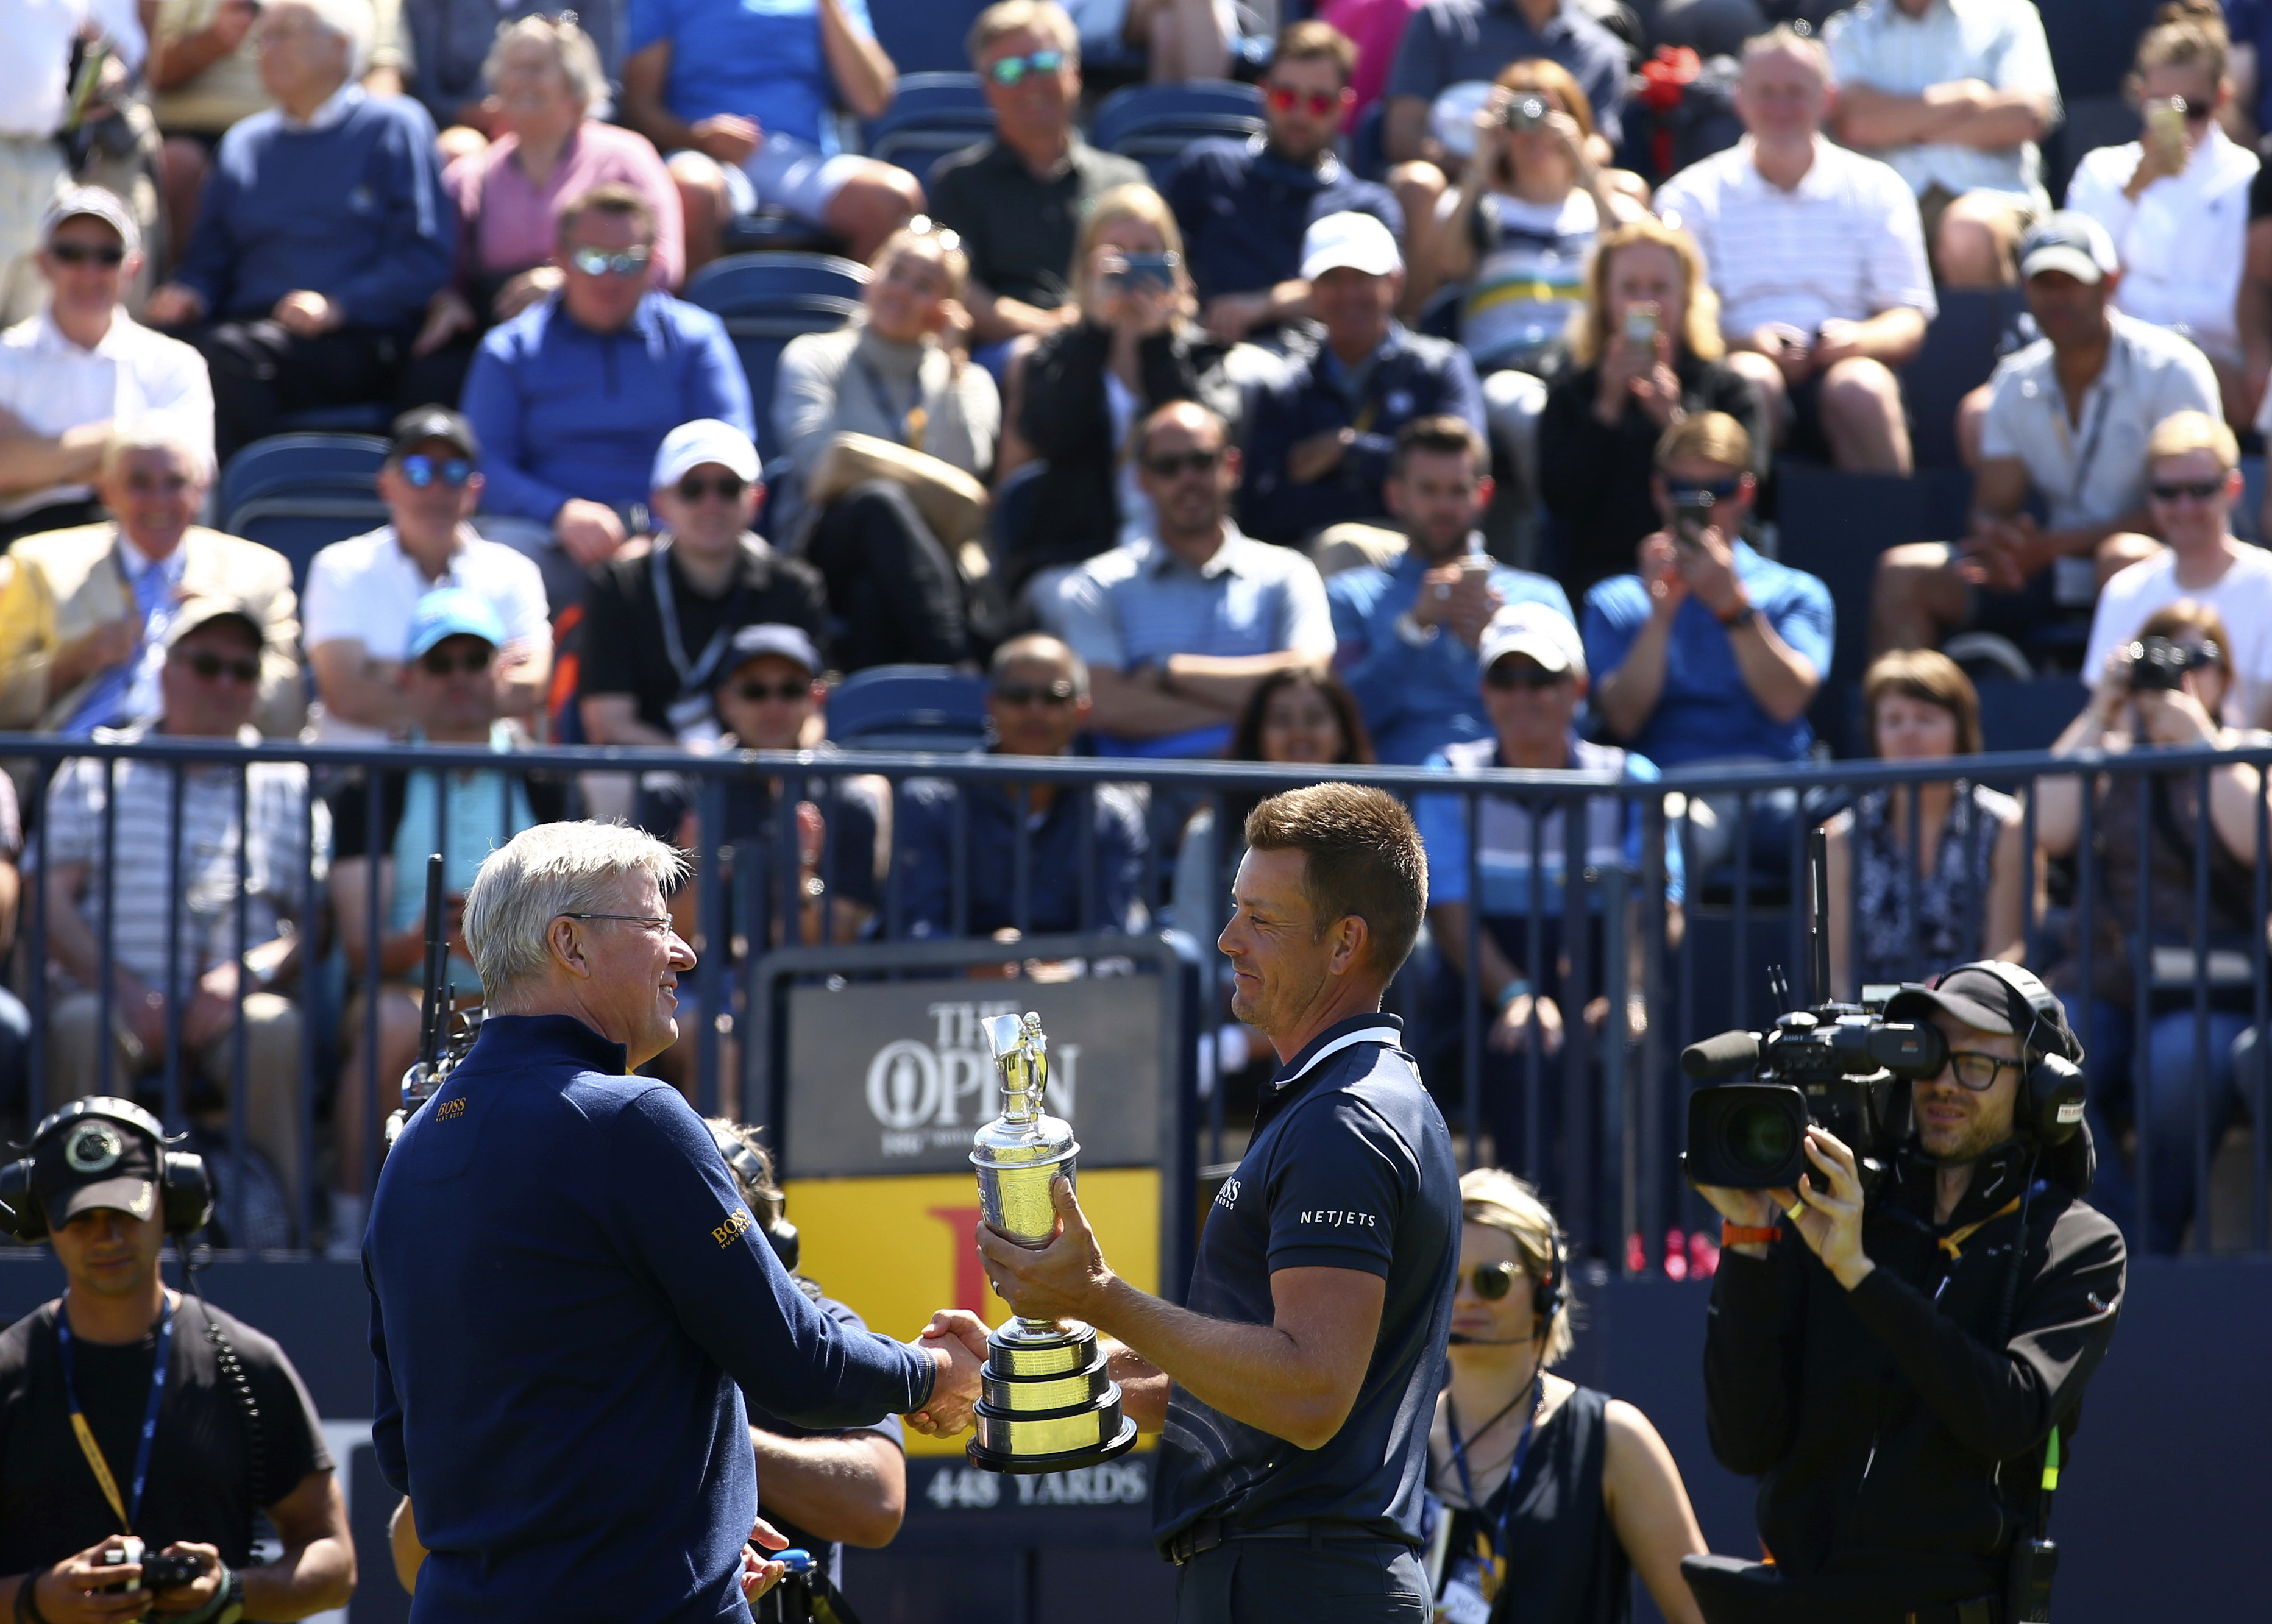 Defending champion Henrik Stenson of Sweden, right, hands over the Claret Jug to Martin Slumbers, Chief Executive of the R&A, during the second practice day at the British Open Golf Championship at Royal Birkdale in Southport, England, Monday, July 17, 20